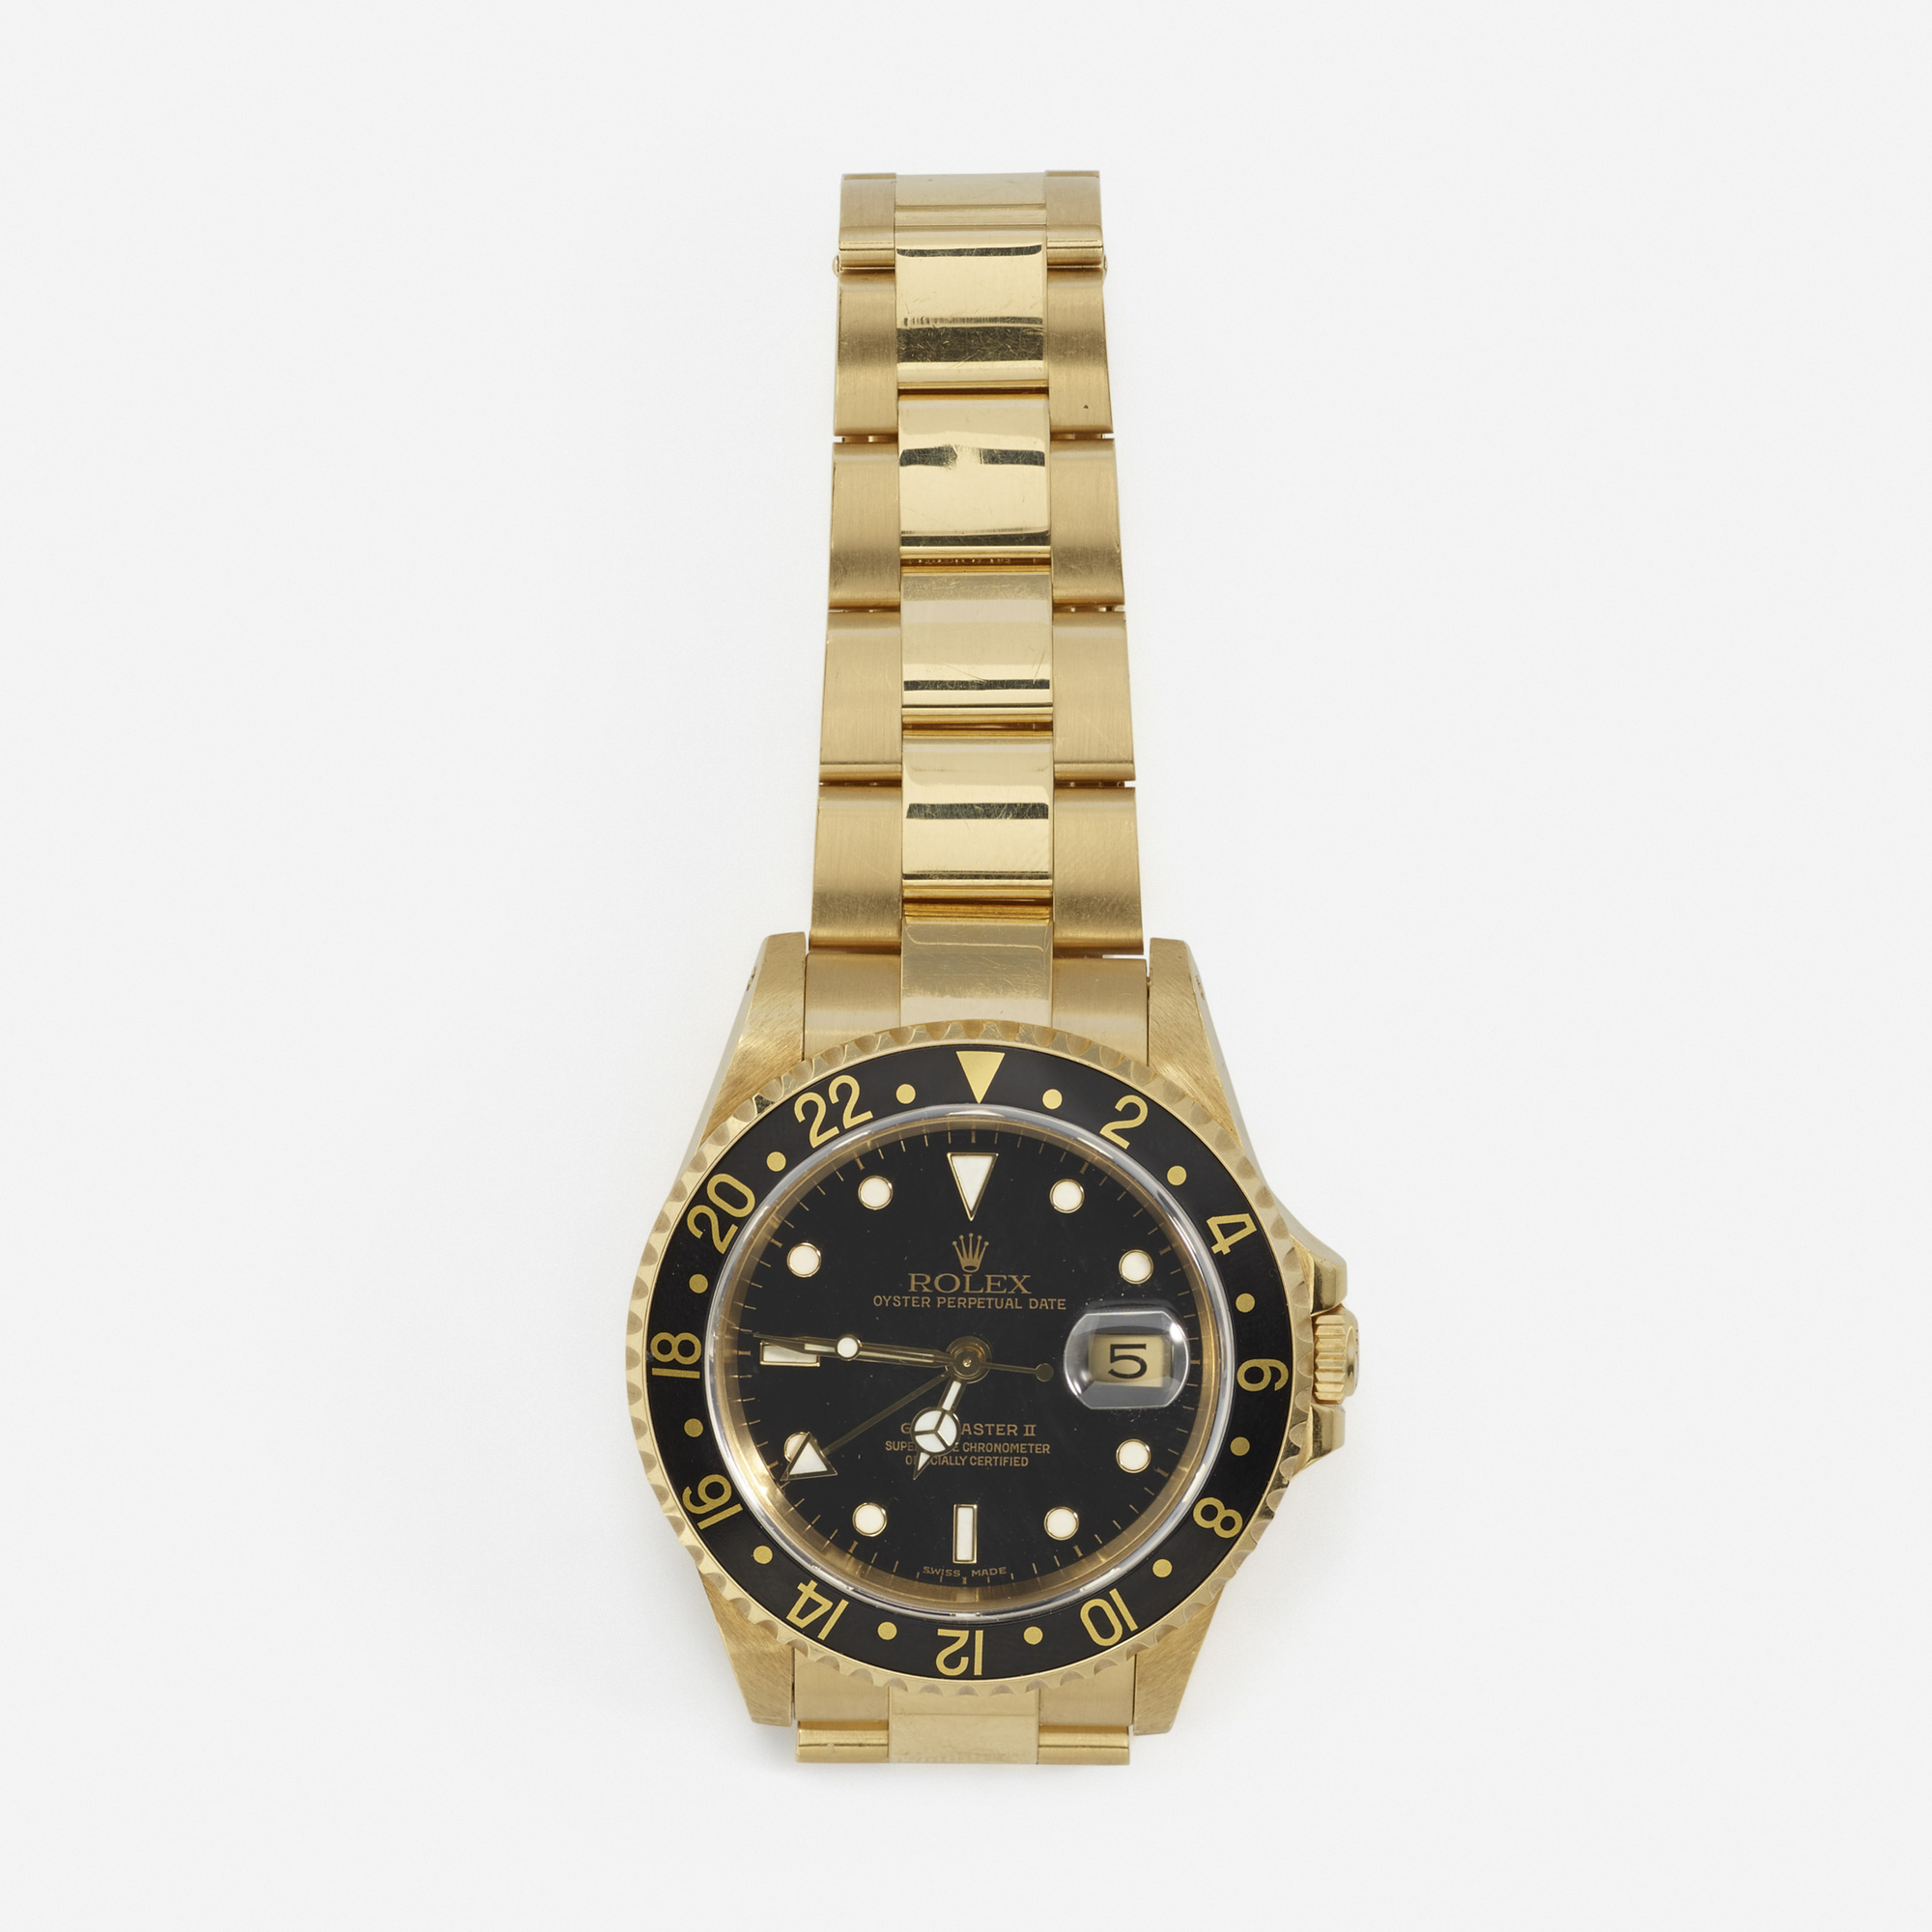 294: Rolex / A gold GMT Master II watch (1 of 1)